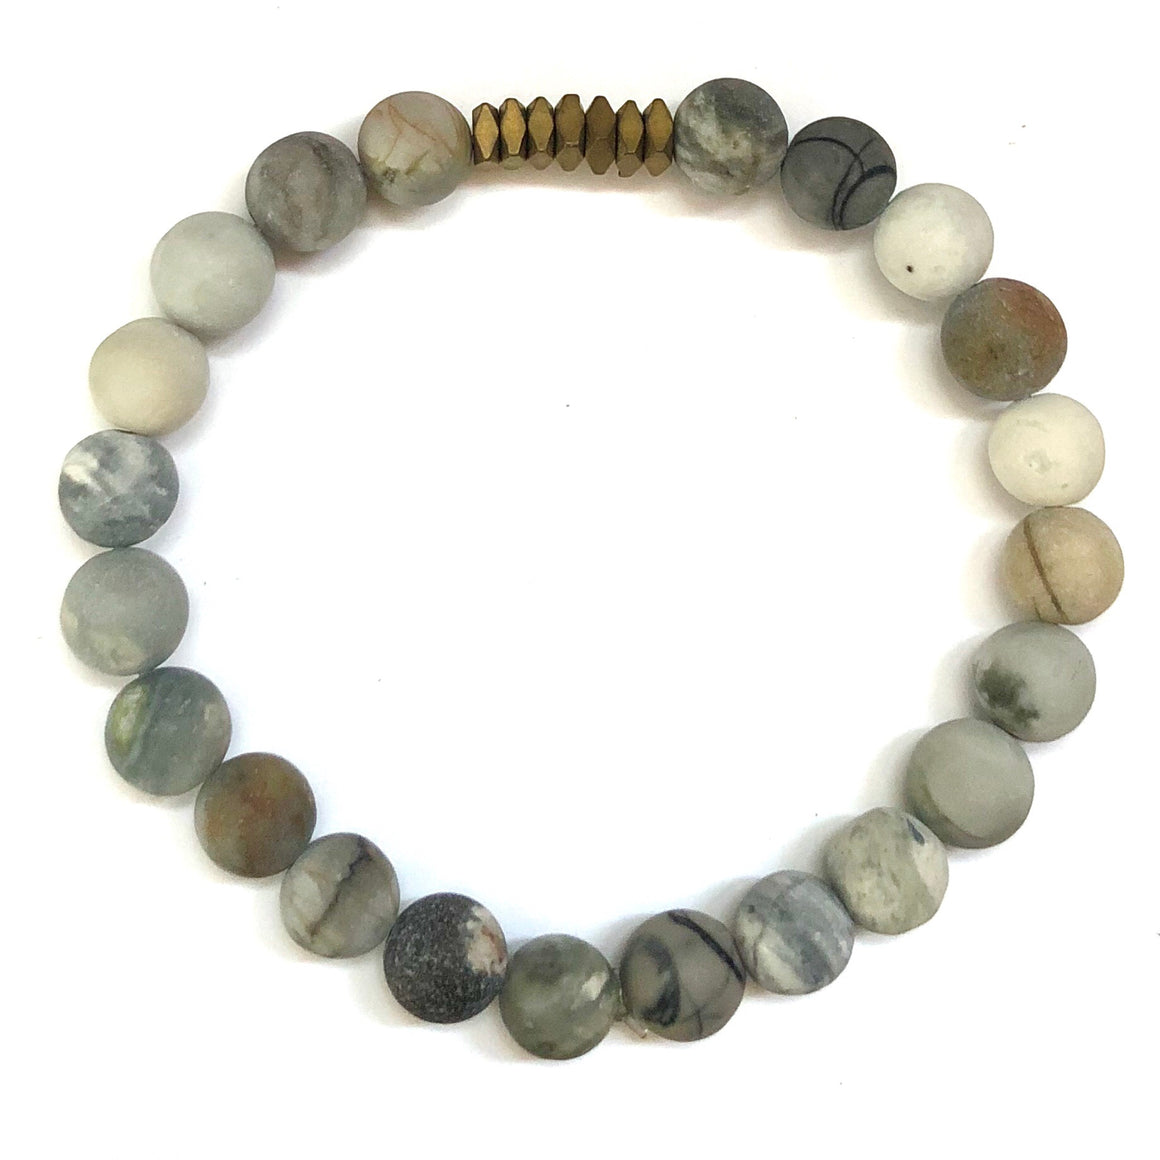 Chamonix Men's Beaded Stone Bracelet - Nikki Smith Designs